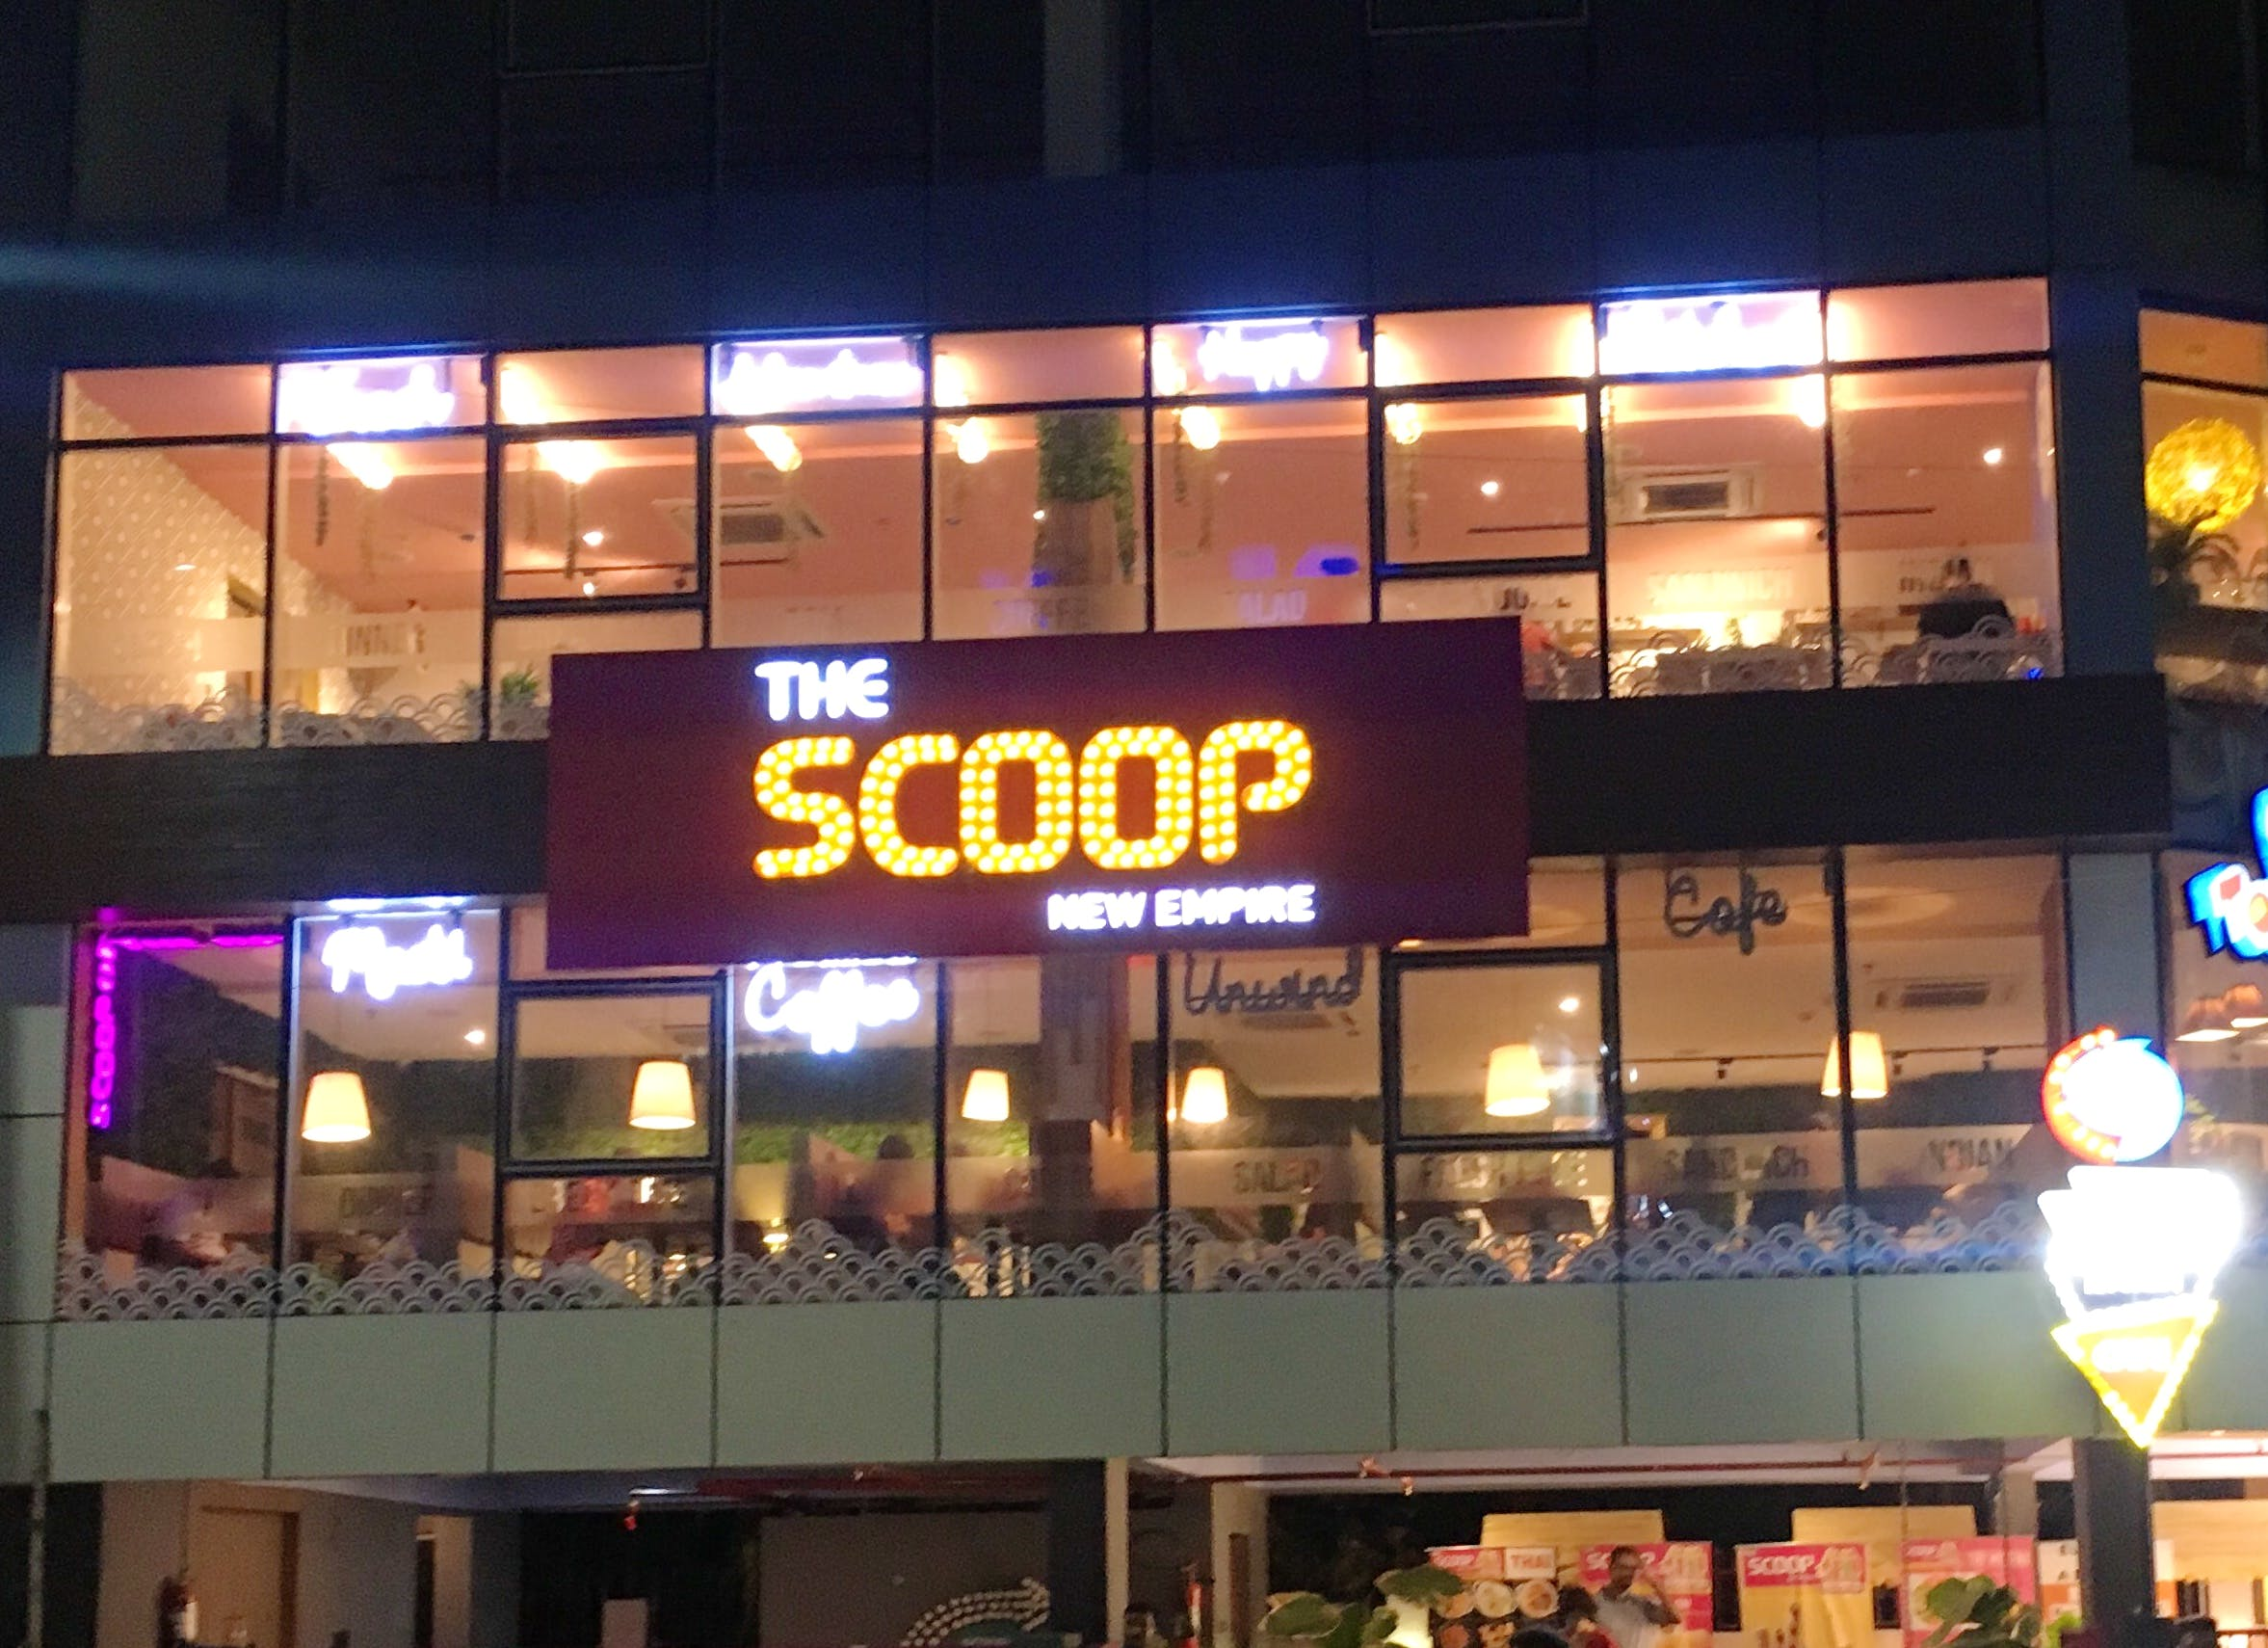 image - Scoop